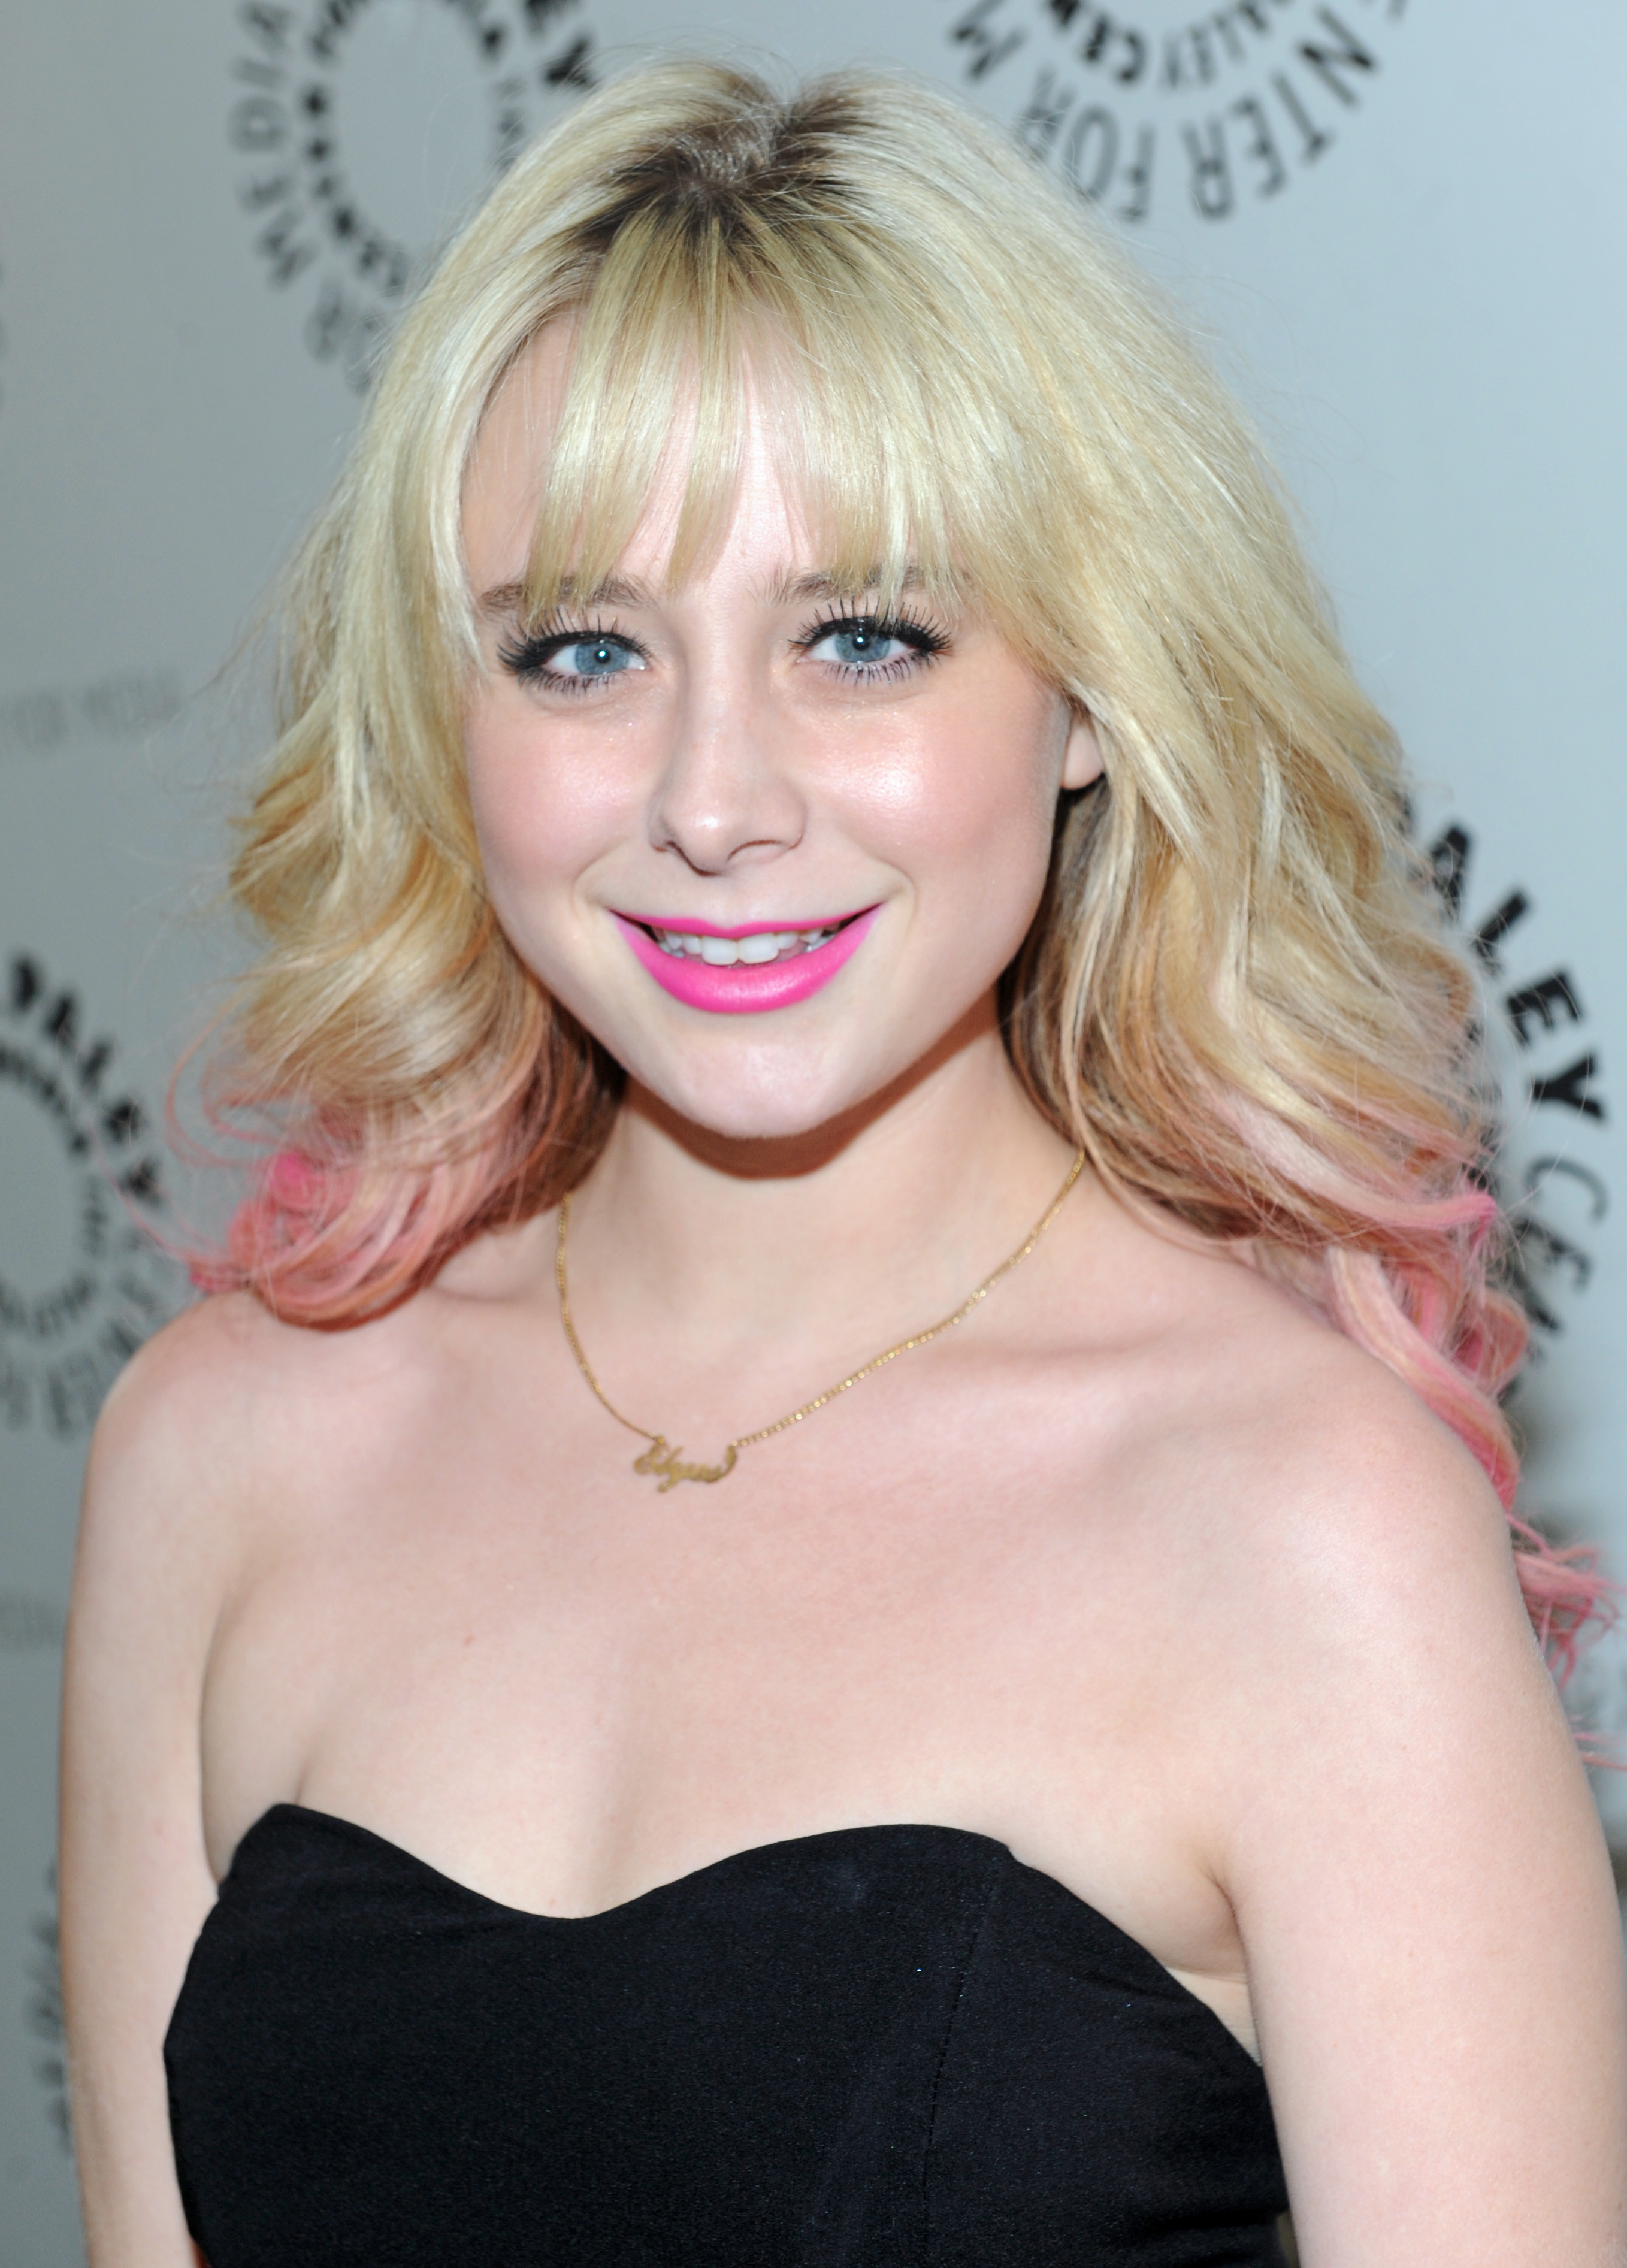 alessandra torresani facebookalessandra torresani instagram, alessandra torresani vk, alessandra torresani tyler shield, alessandra torresani the big bang theory, alessandra torresani height weight, alessandra torresani, alessandra torresani tumblr, alessandra torresani caprica, alessandra torresani twitter, alessandra torresani facebook, alessandra torresani malcolm, alessandra torresani imdb, alessandra torresani workaholics, alessandra torresani nudography, alessandra torresani american horror story